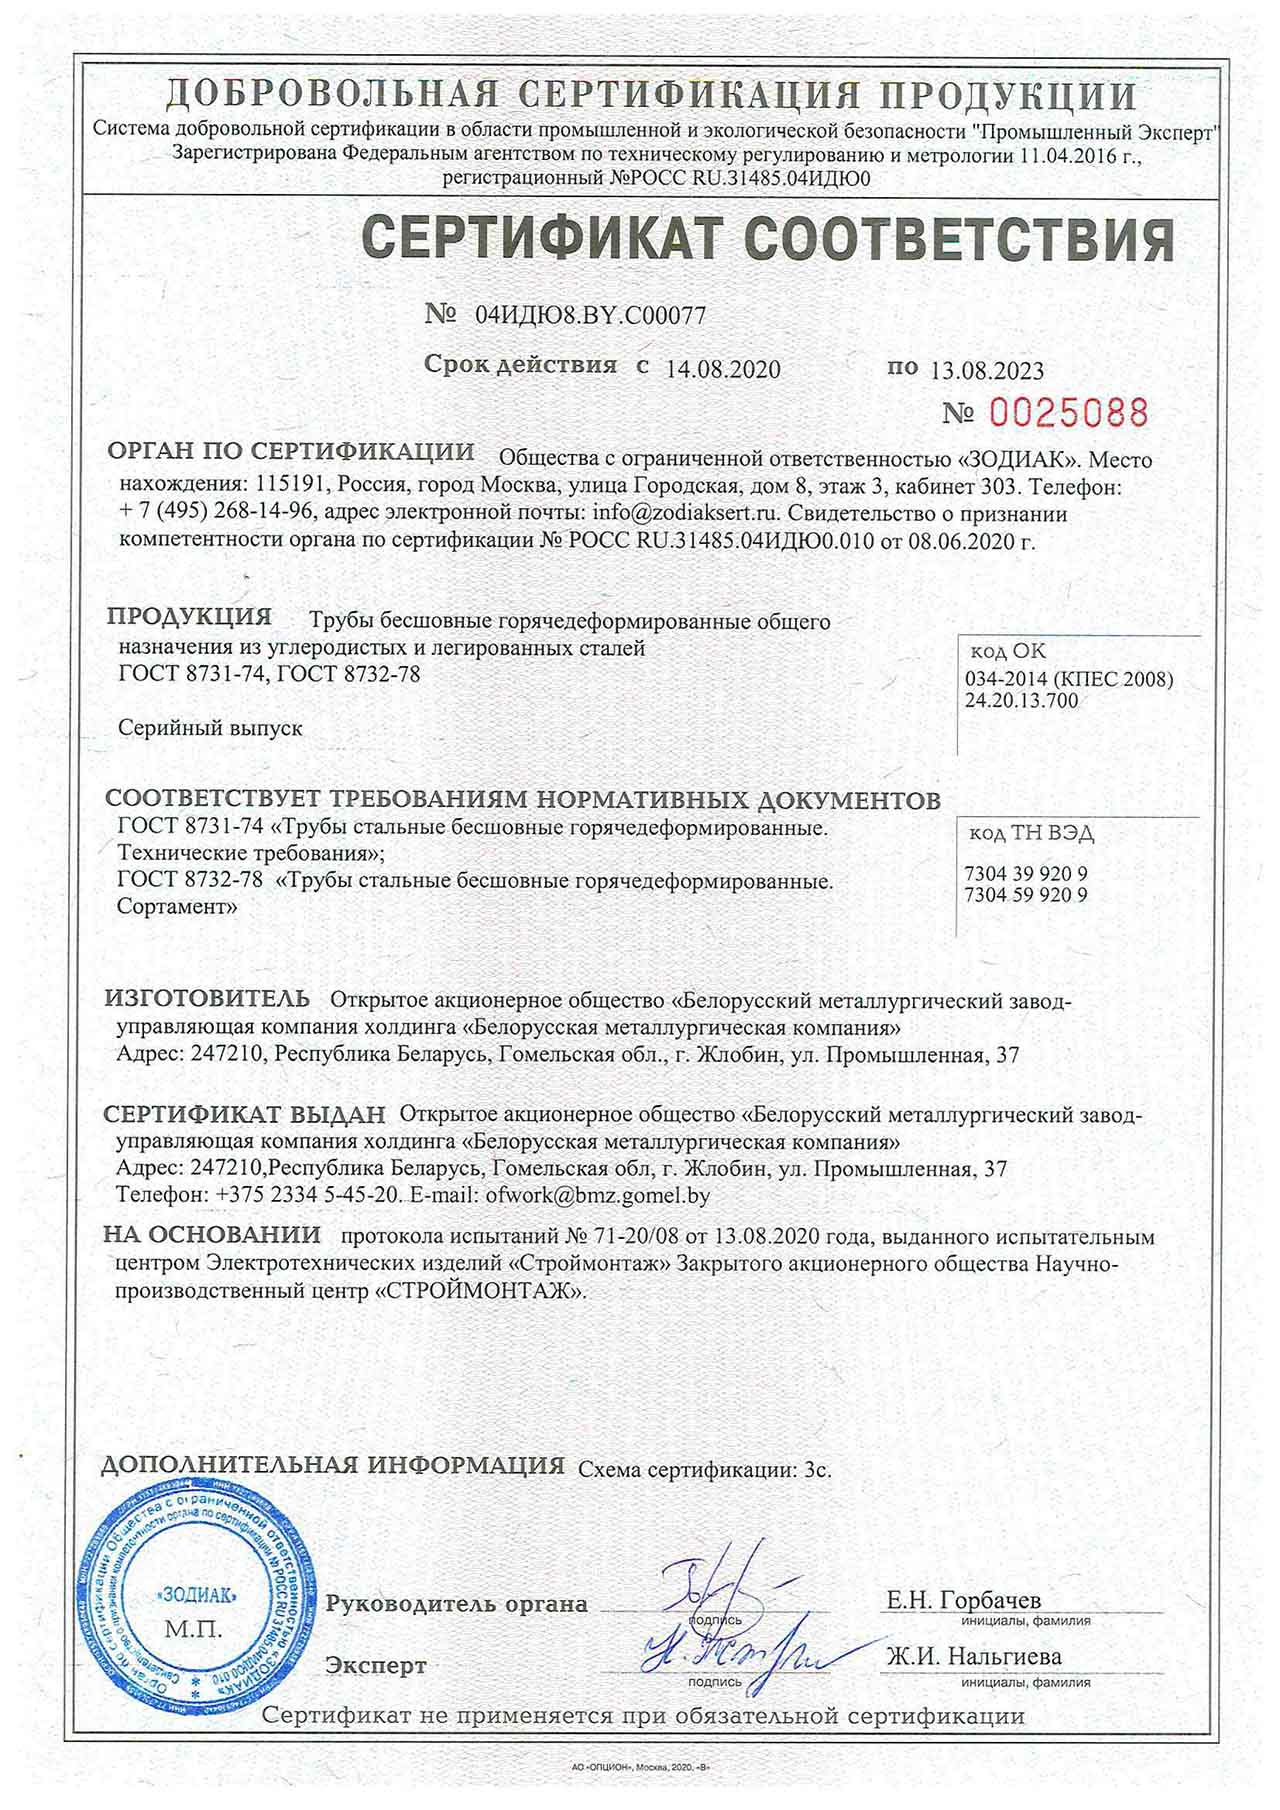 Conformity certificate No. 04IDYU8.BY.С00077 SERCONS / ZODIAC Ltd (RF) for the production of seamless hot-rolled general-purpose  pipes of carbon and alloyed steel grade according to the requirements GOST 8731-74, GOST 8732-78